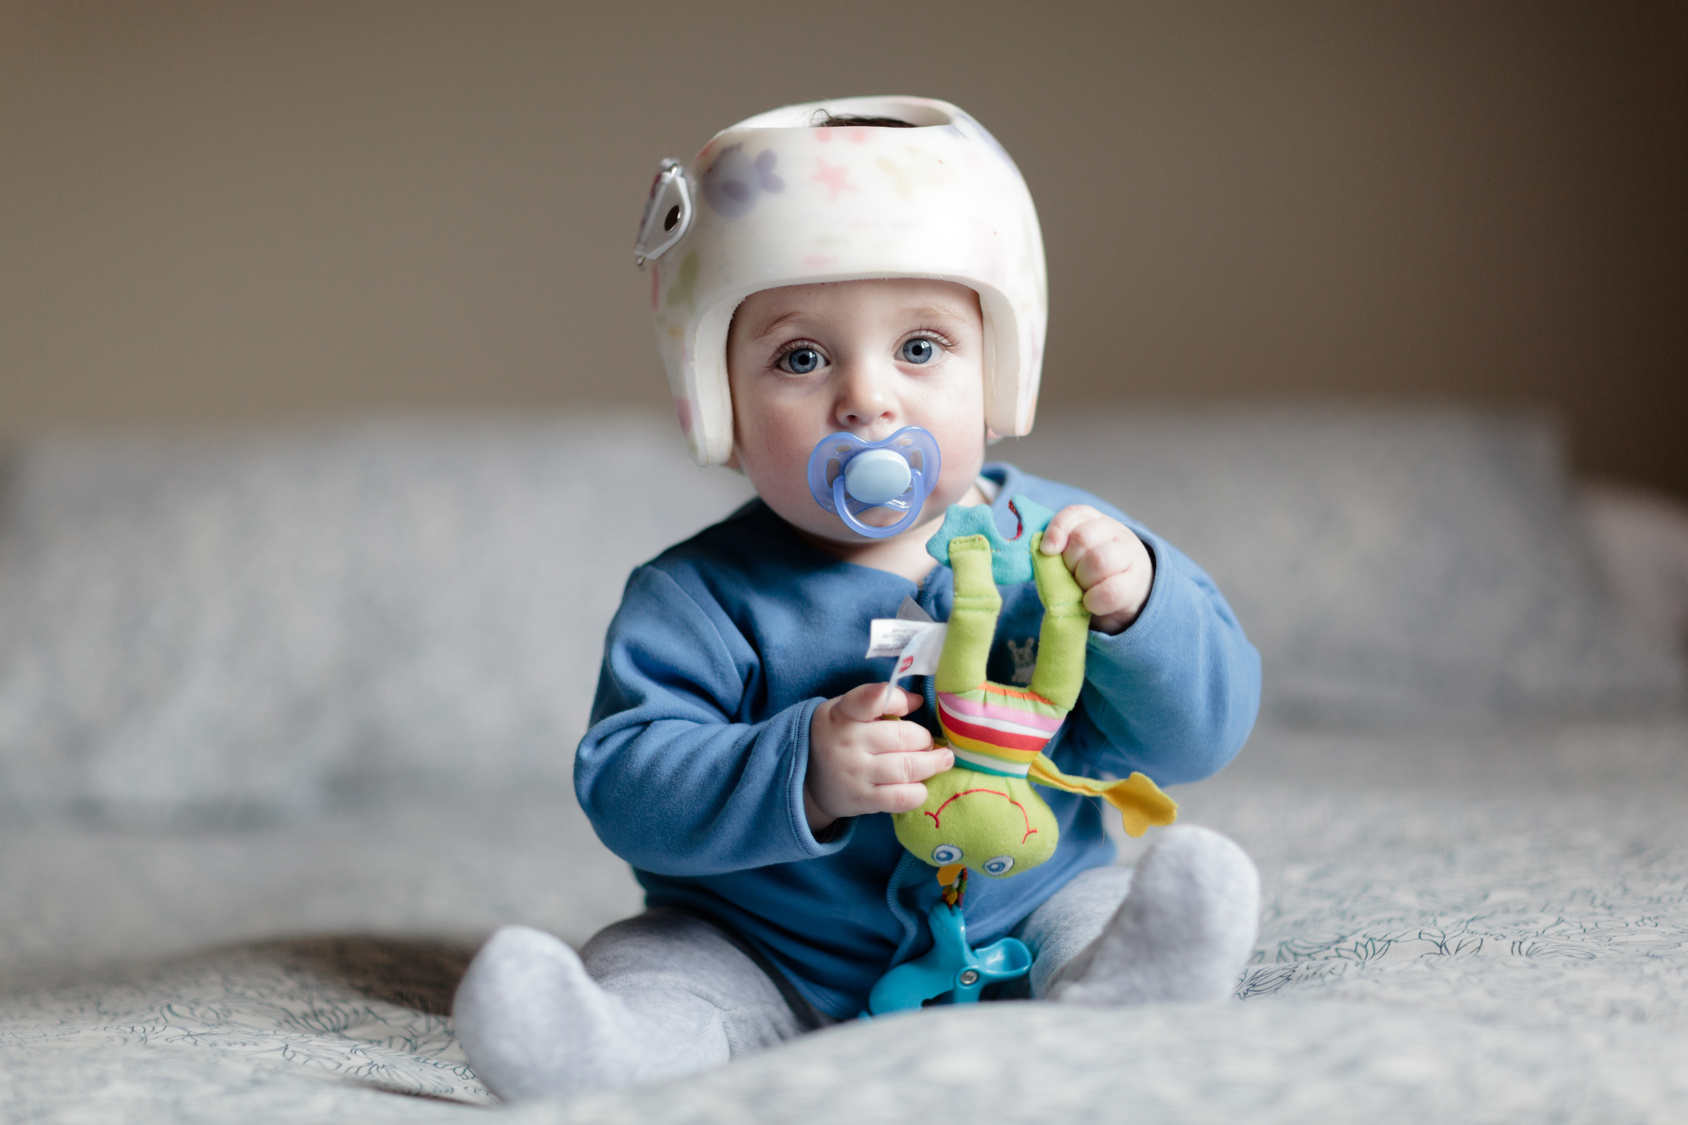 Sleep Tips For Babies With A Helmet, Cast, Brace Or Reflux